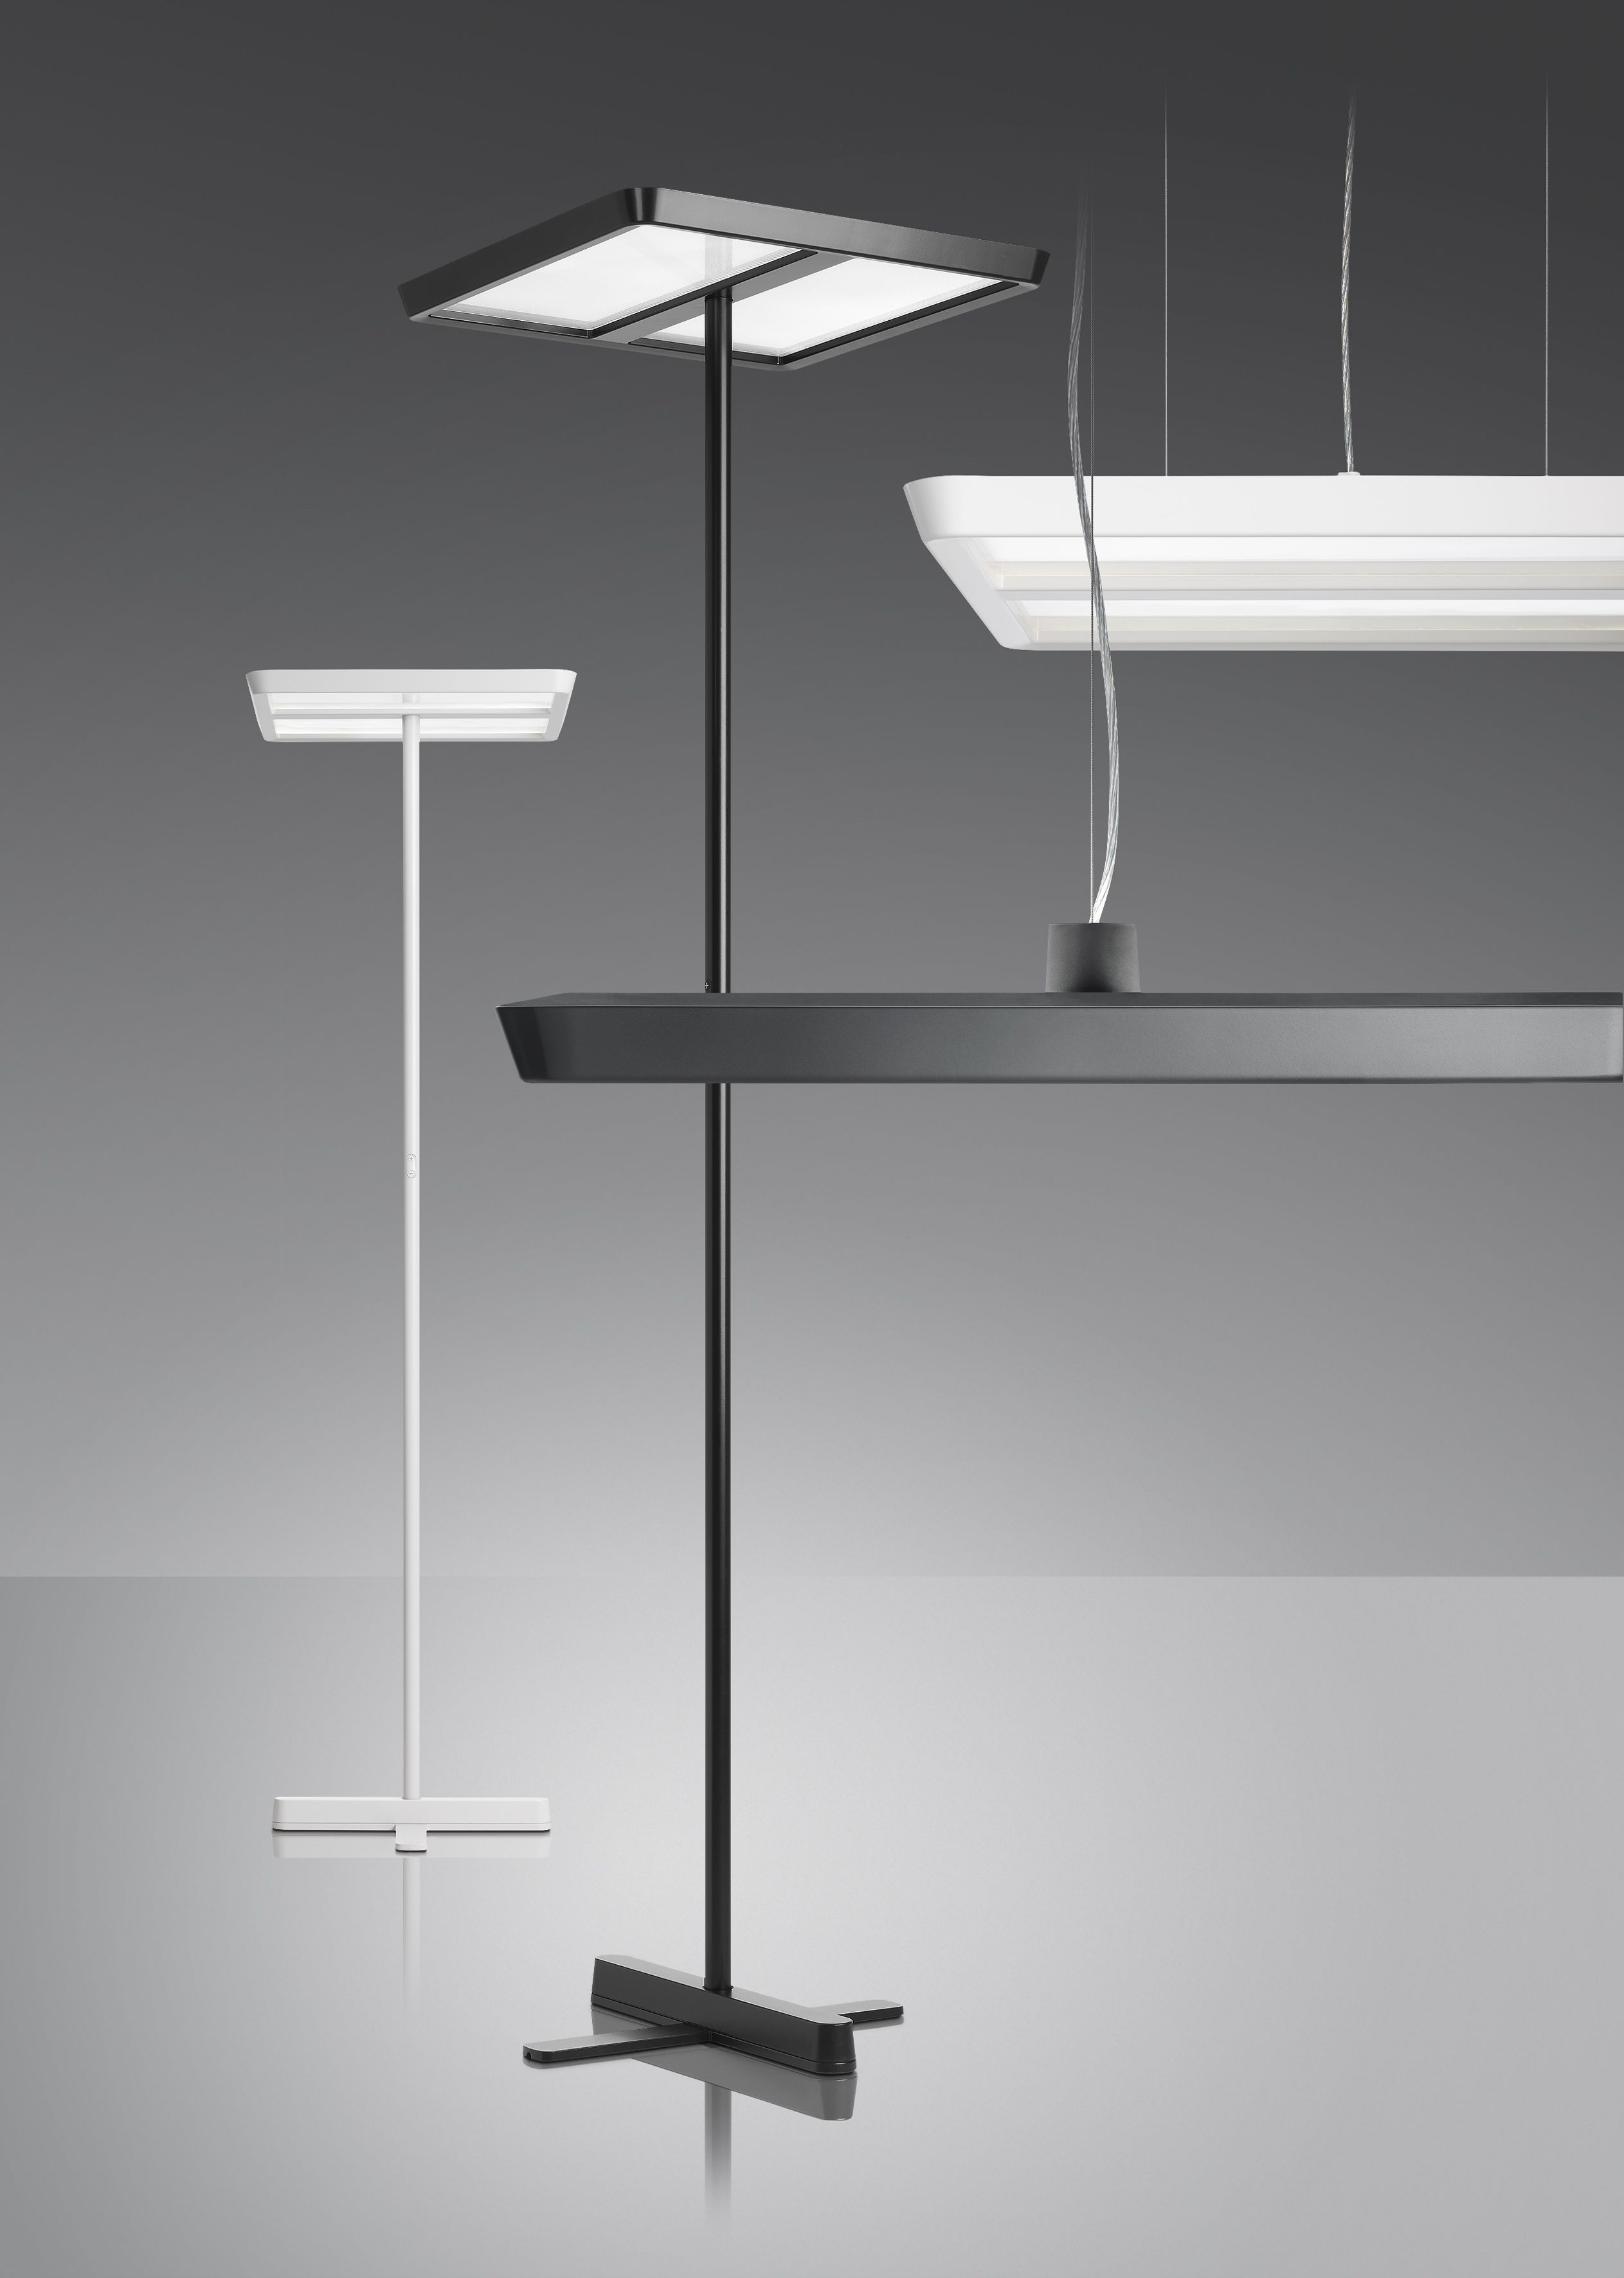 belux karo design verlichting lighting eikelenboom